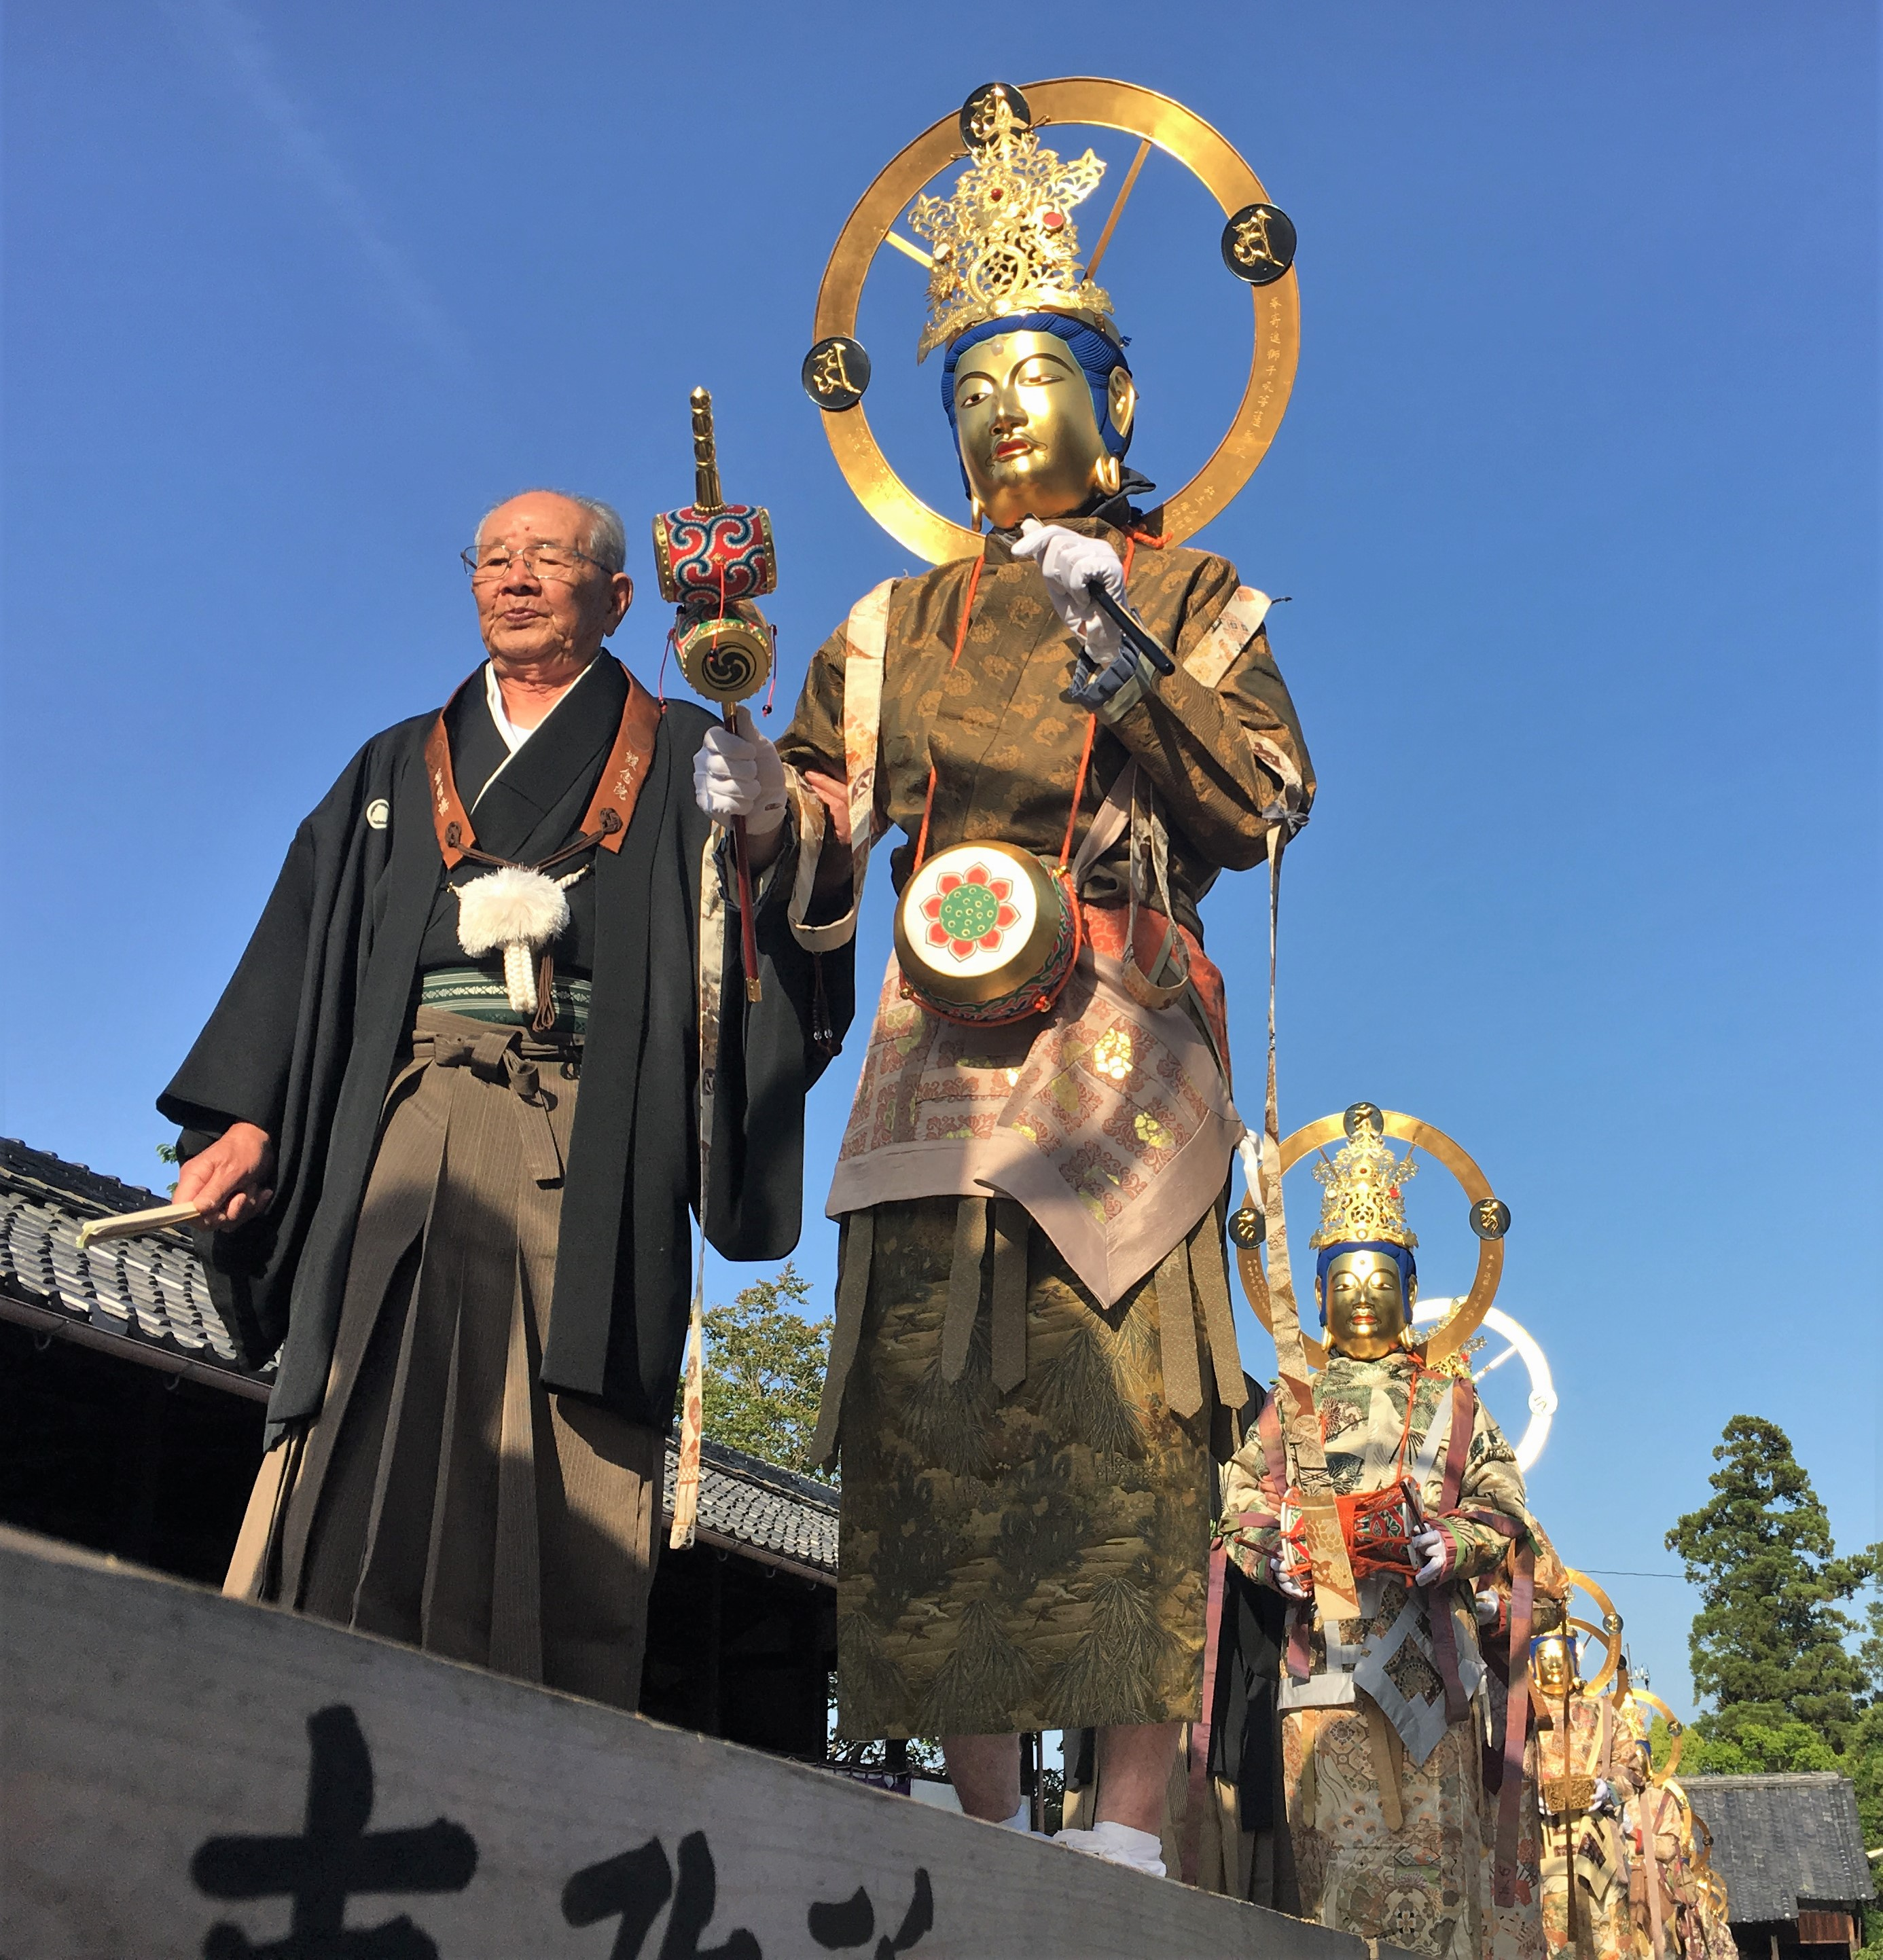 procession of 25 men dressed as bosatsu during Taima-dera's Nerikuyo festival